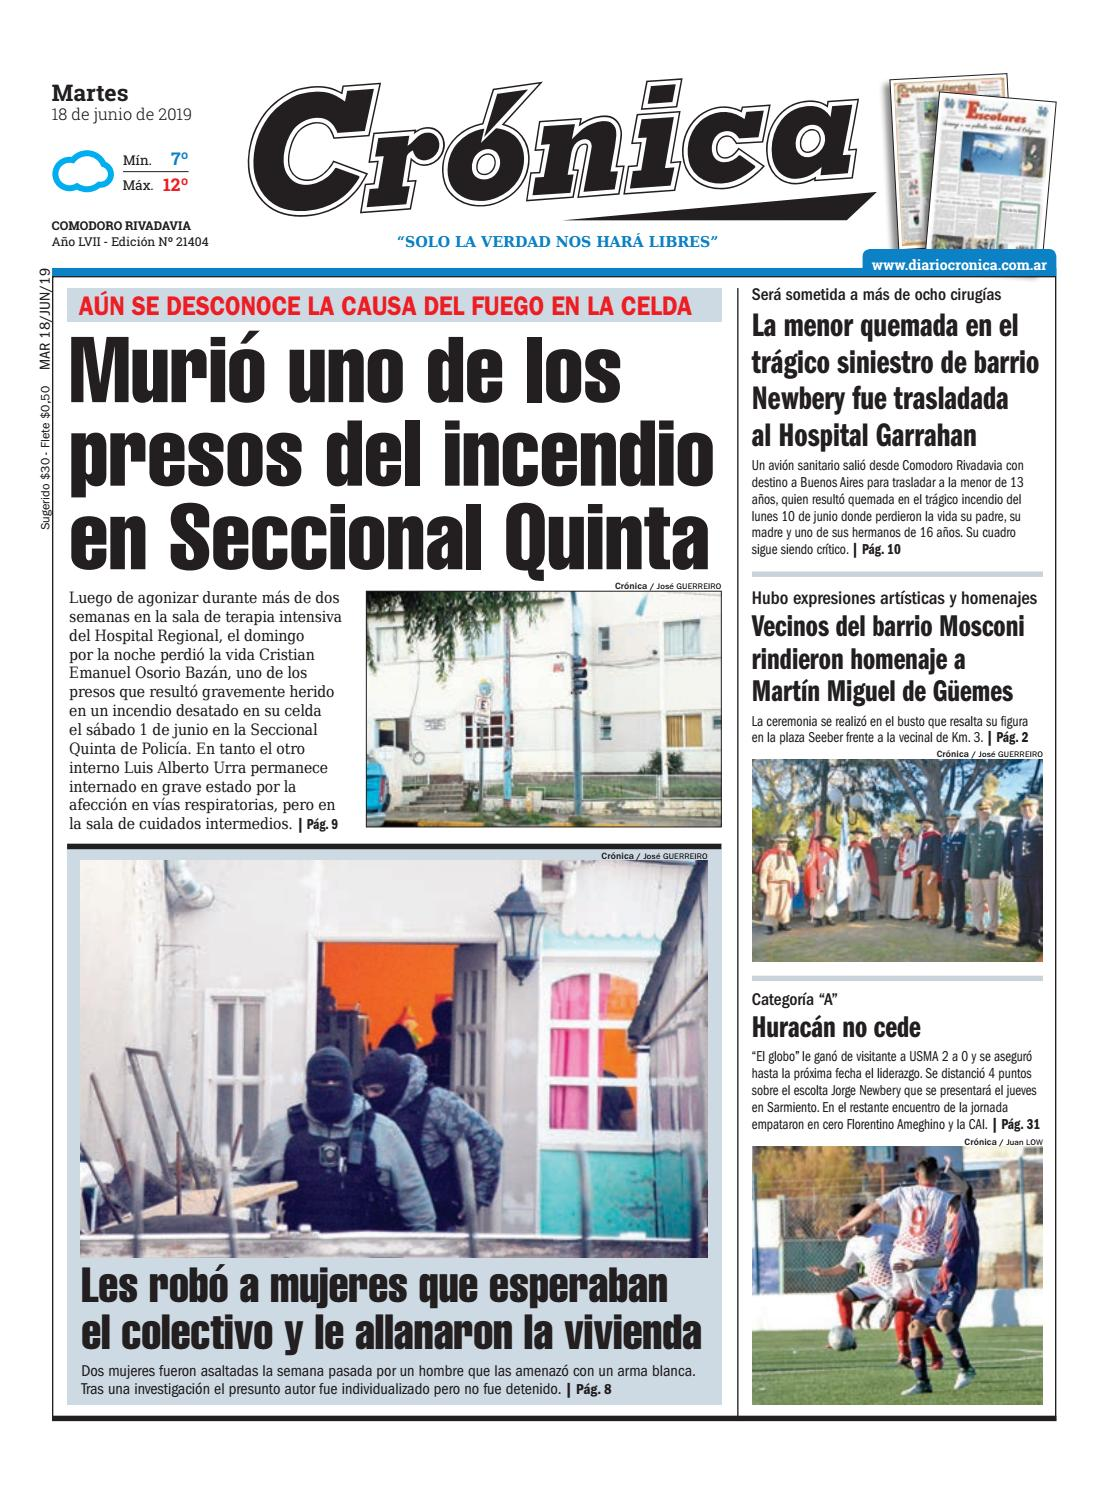 be9b38ef553 Diario cronica 18 06 2019 by Diario Crónica - issuu